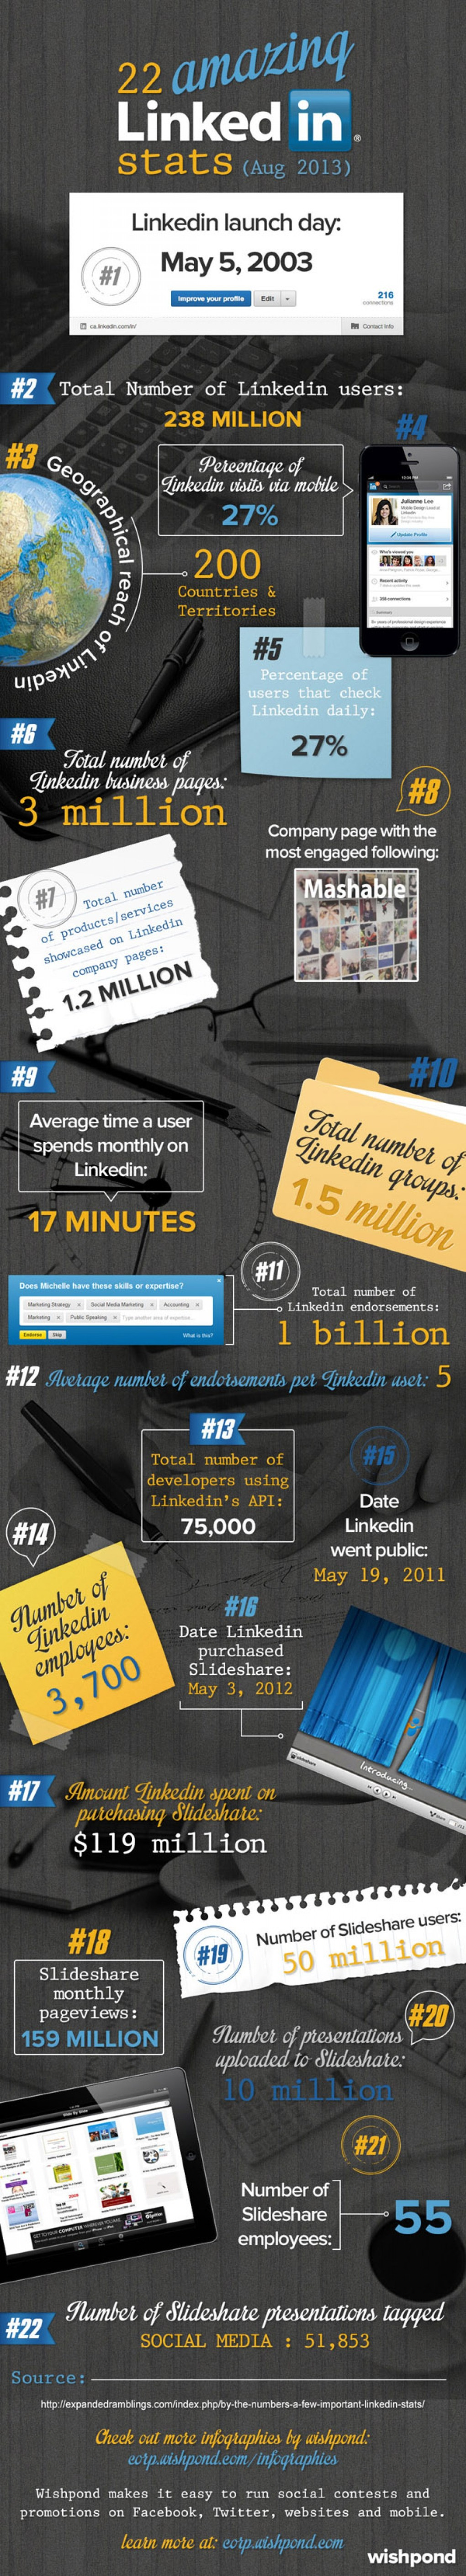 1. Top LinkedIn facts